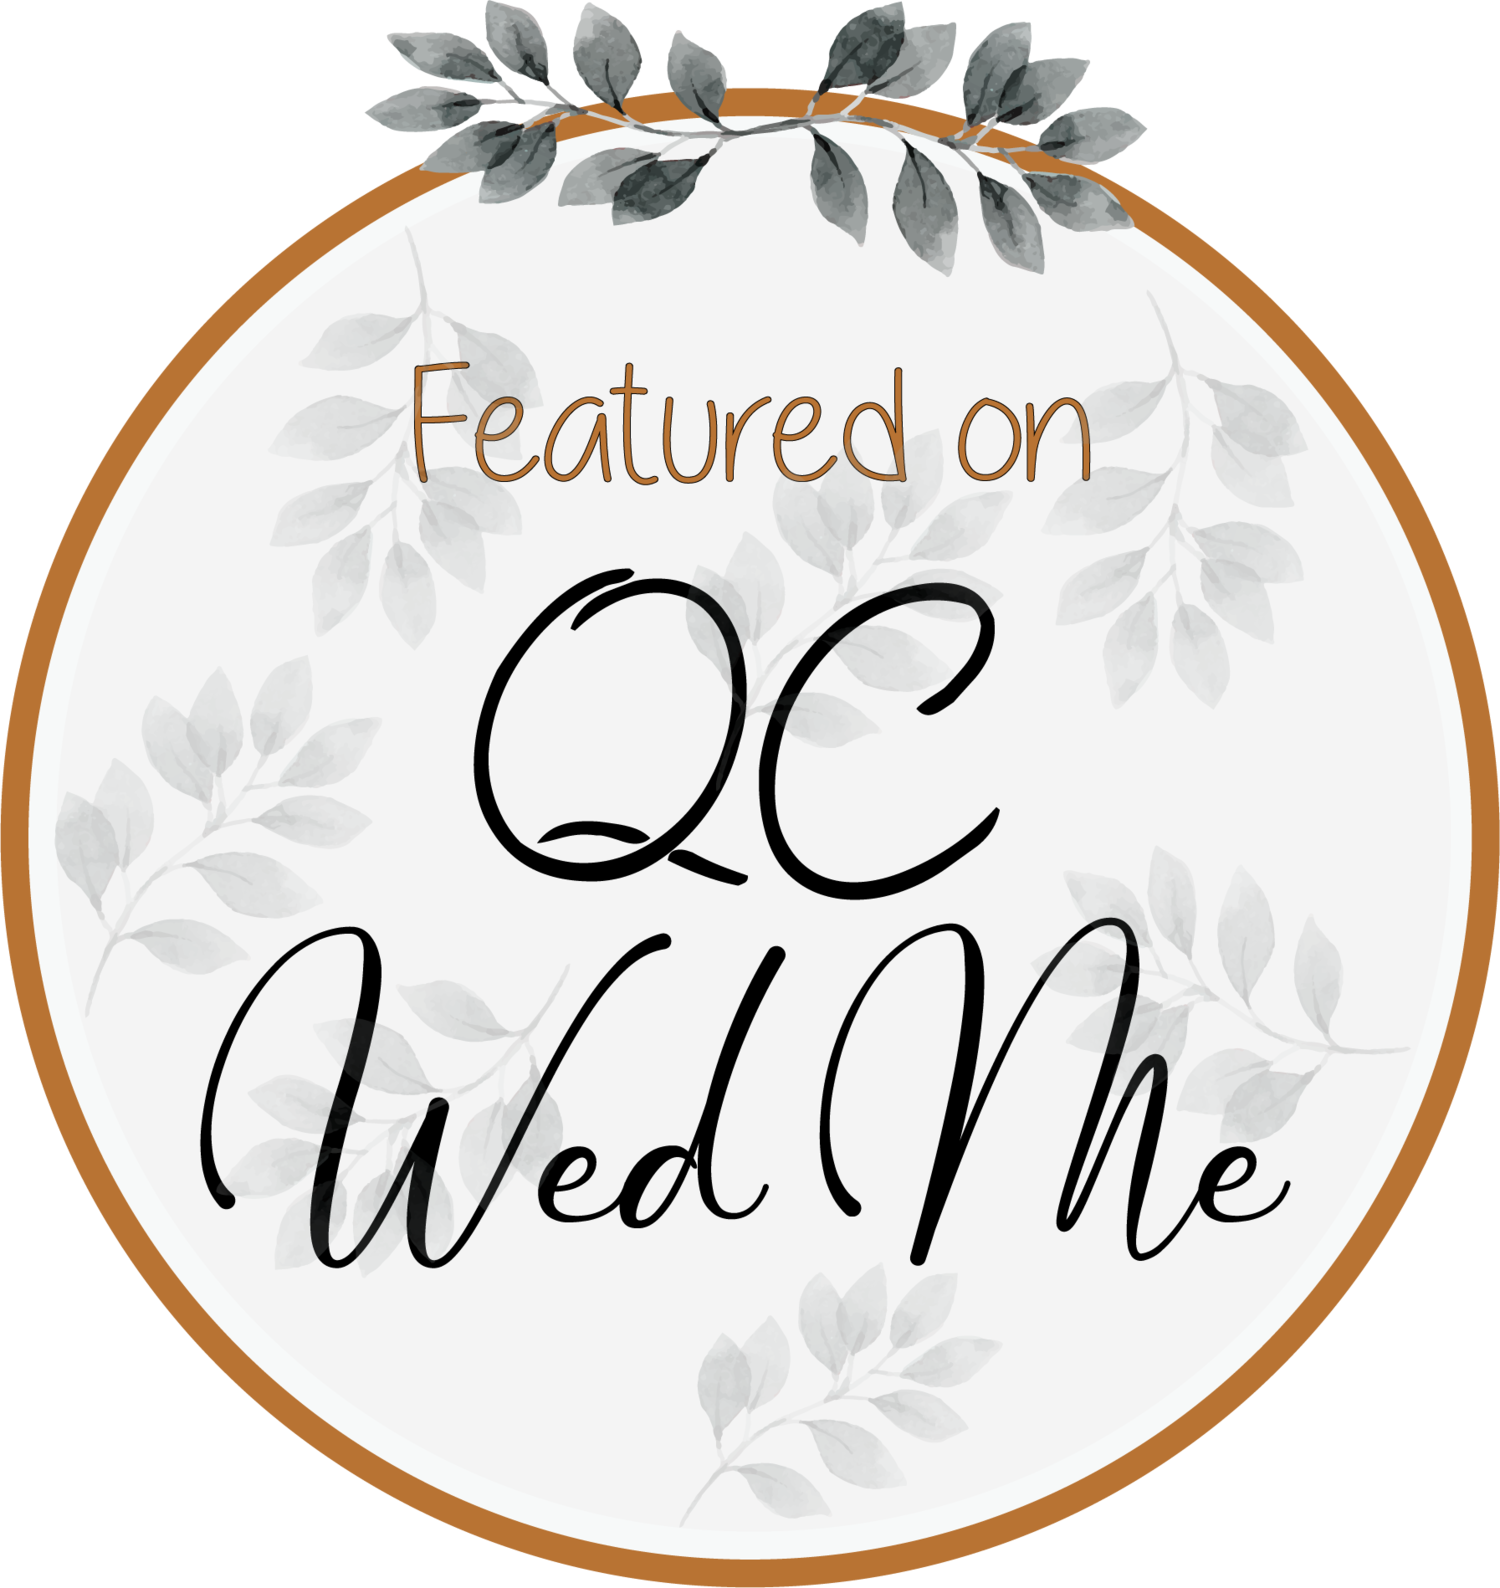 Featured on QC Wed Me